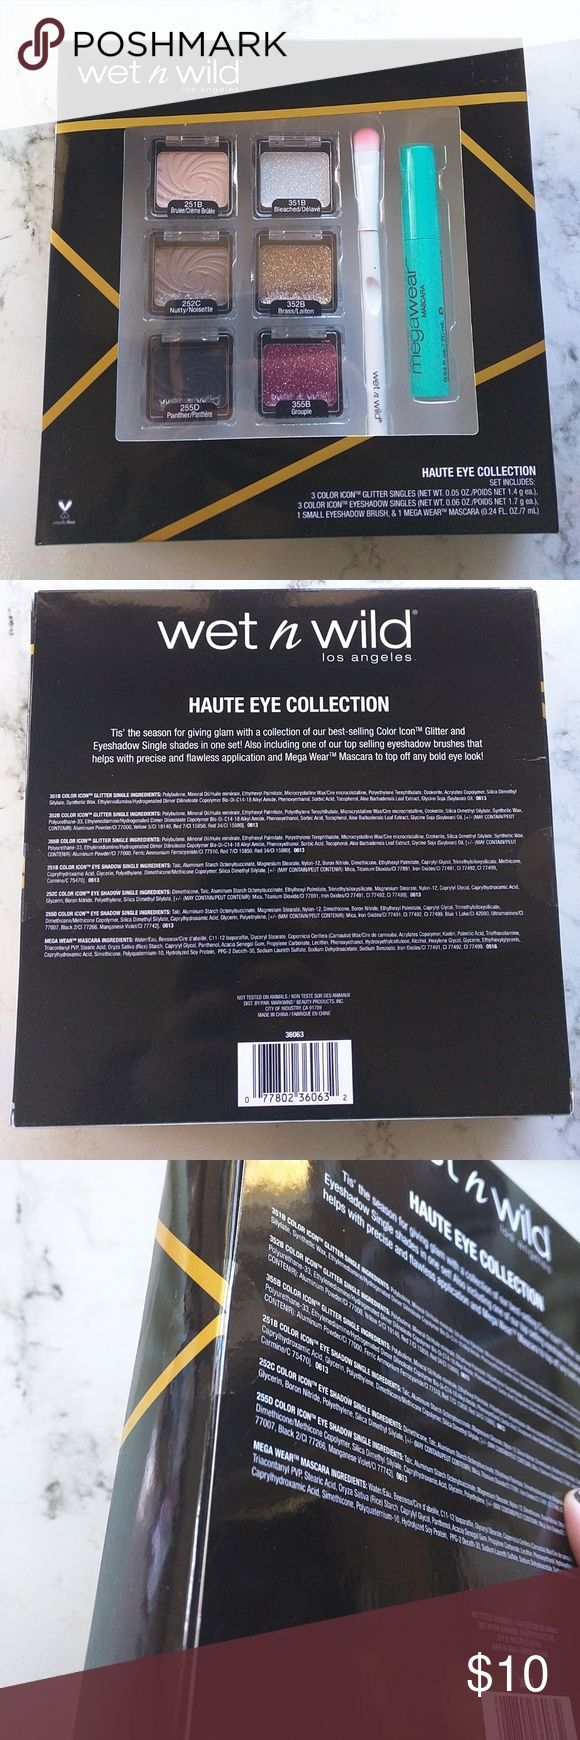 Wet N Wild Haute Eye Collection - Color Icon Glitter Singles in Bleached, Brass, and Groupie - Color Icon Eyeshadow Singles in Brulee, Nutty, and Panther - Eyeshadow Brush - Mega Wear Mascara  Set is new with seal.  No trades.  Please bundle to purchase. wet n wild Makeup